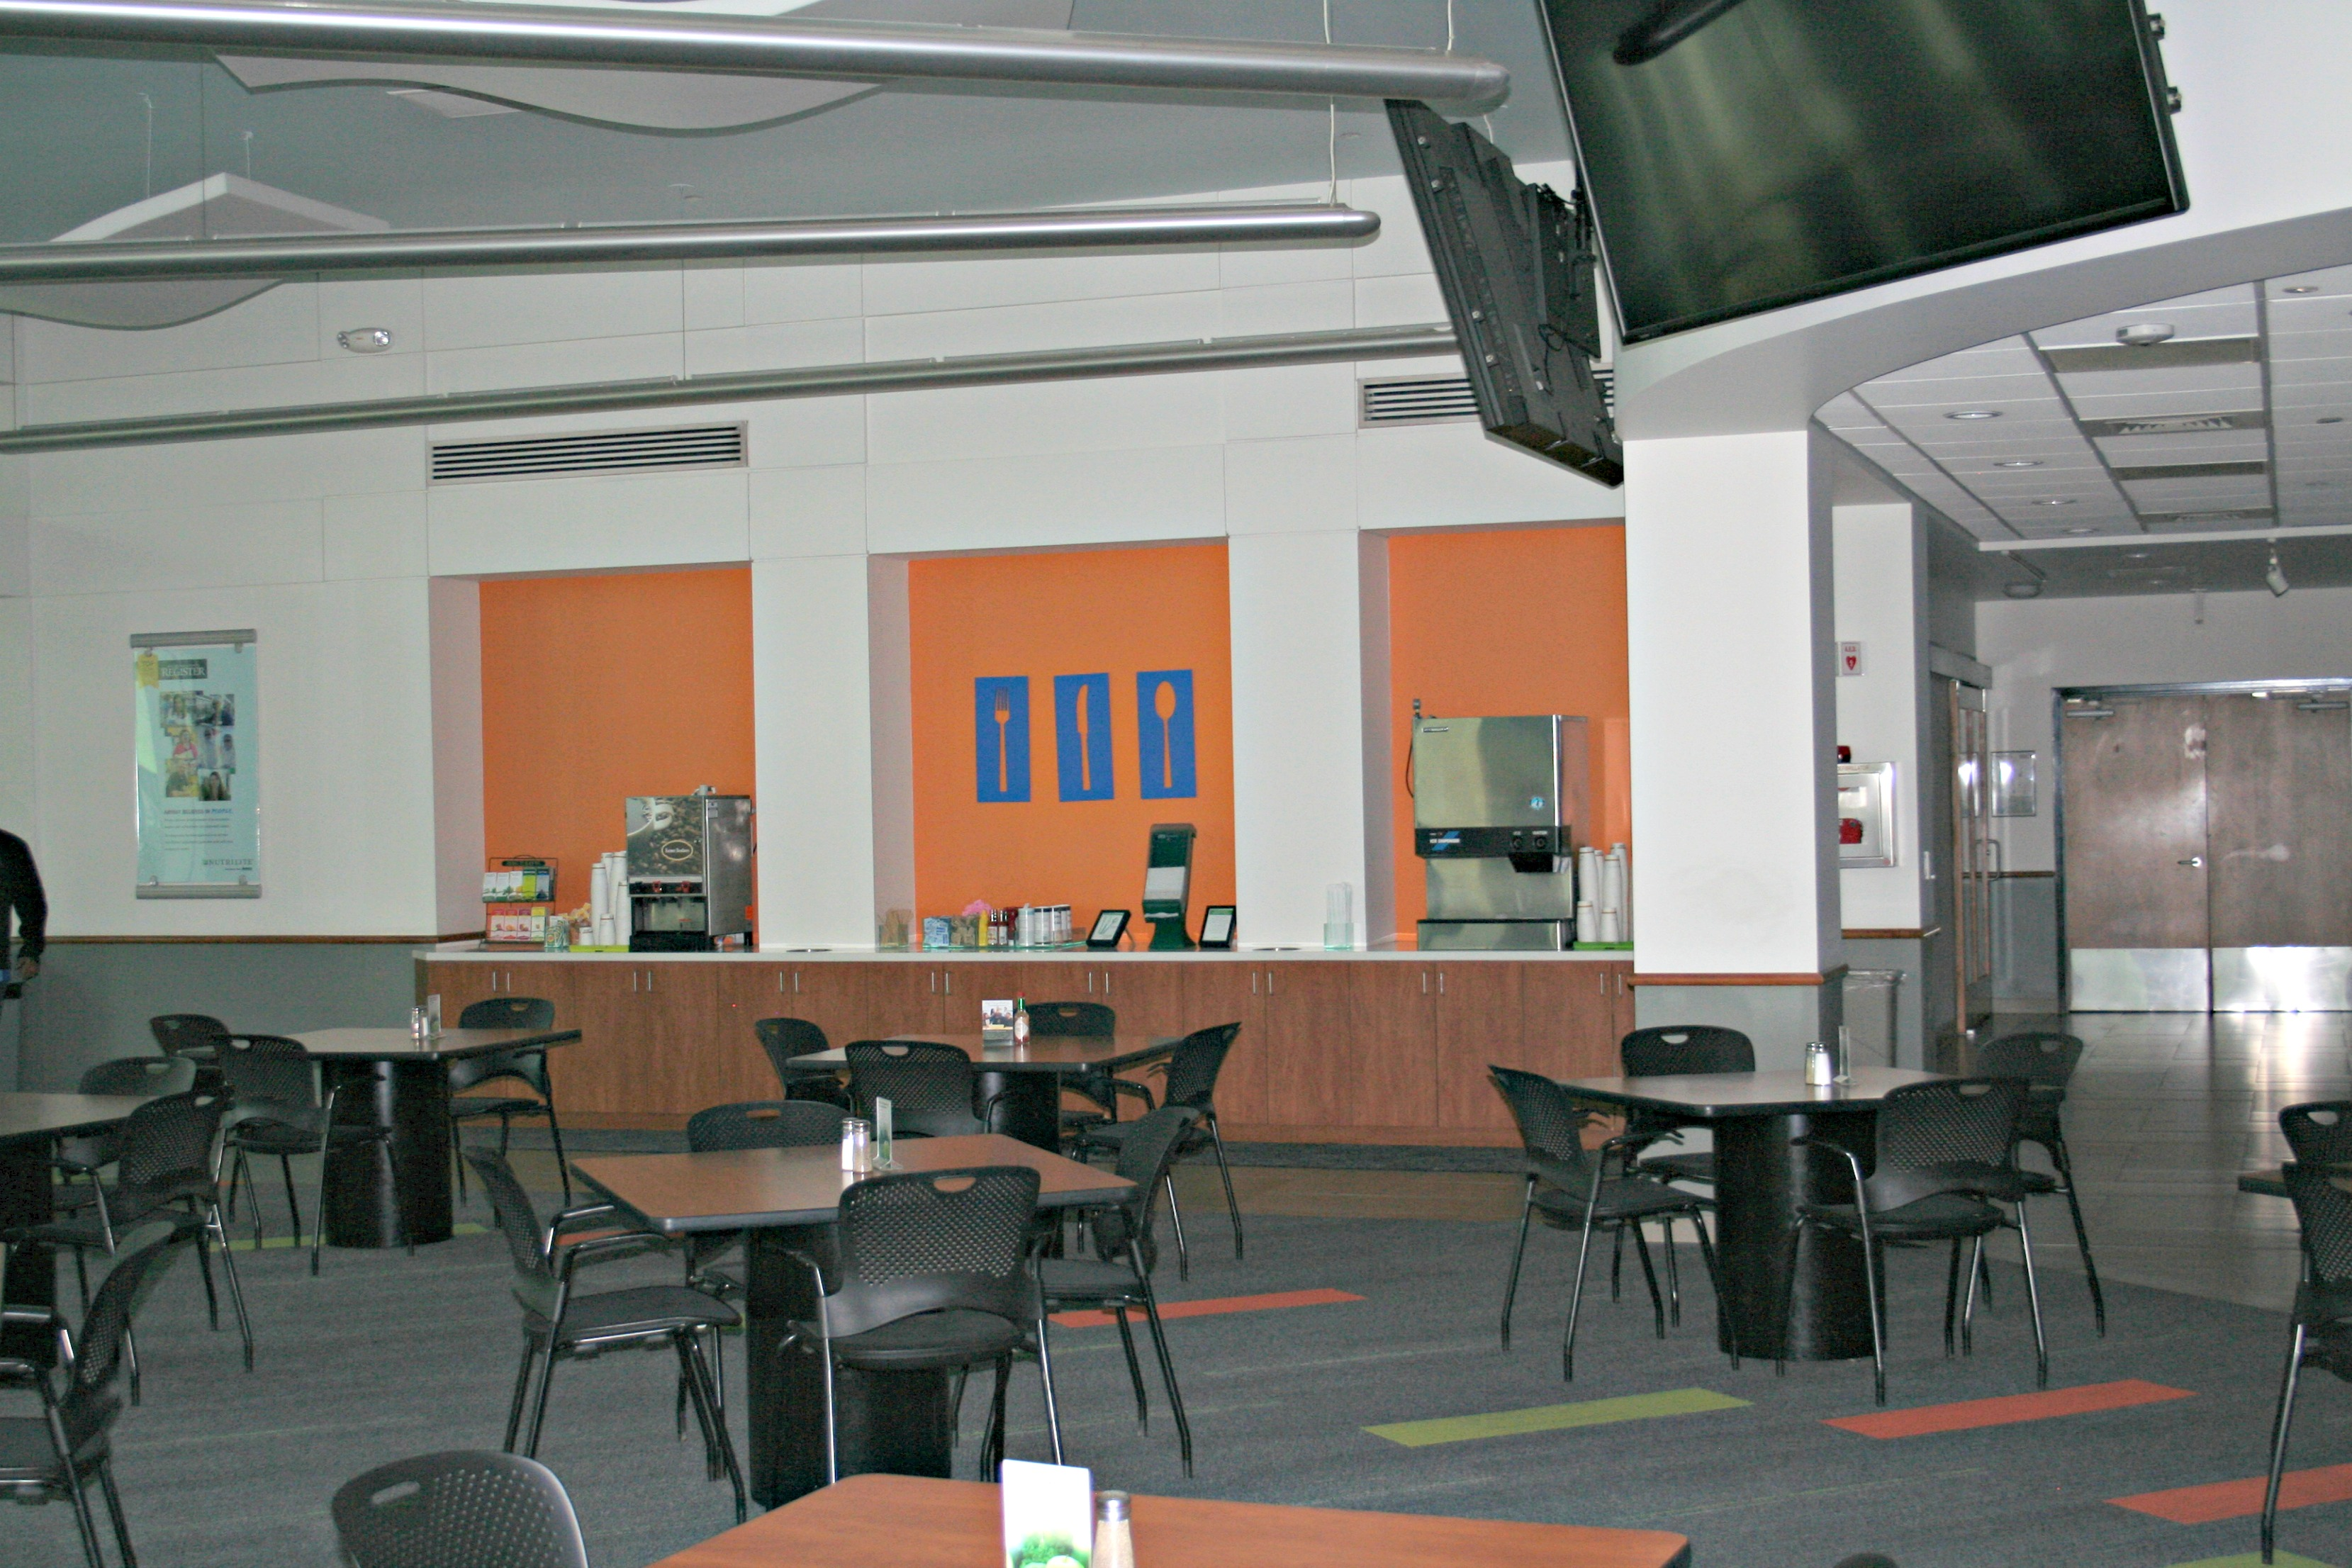 food services facility employee cafeteria